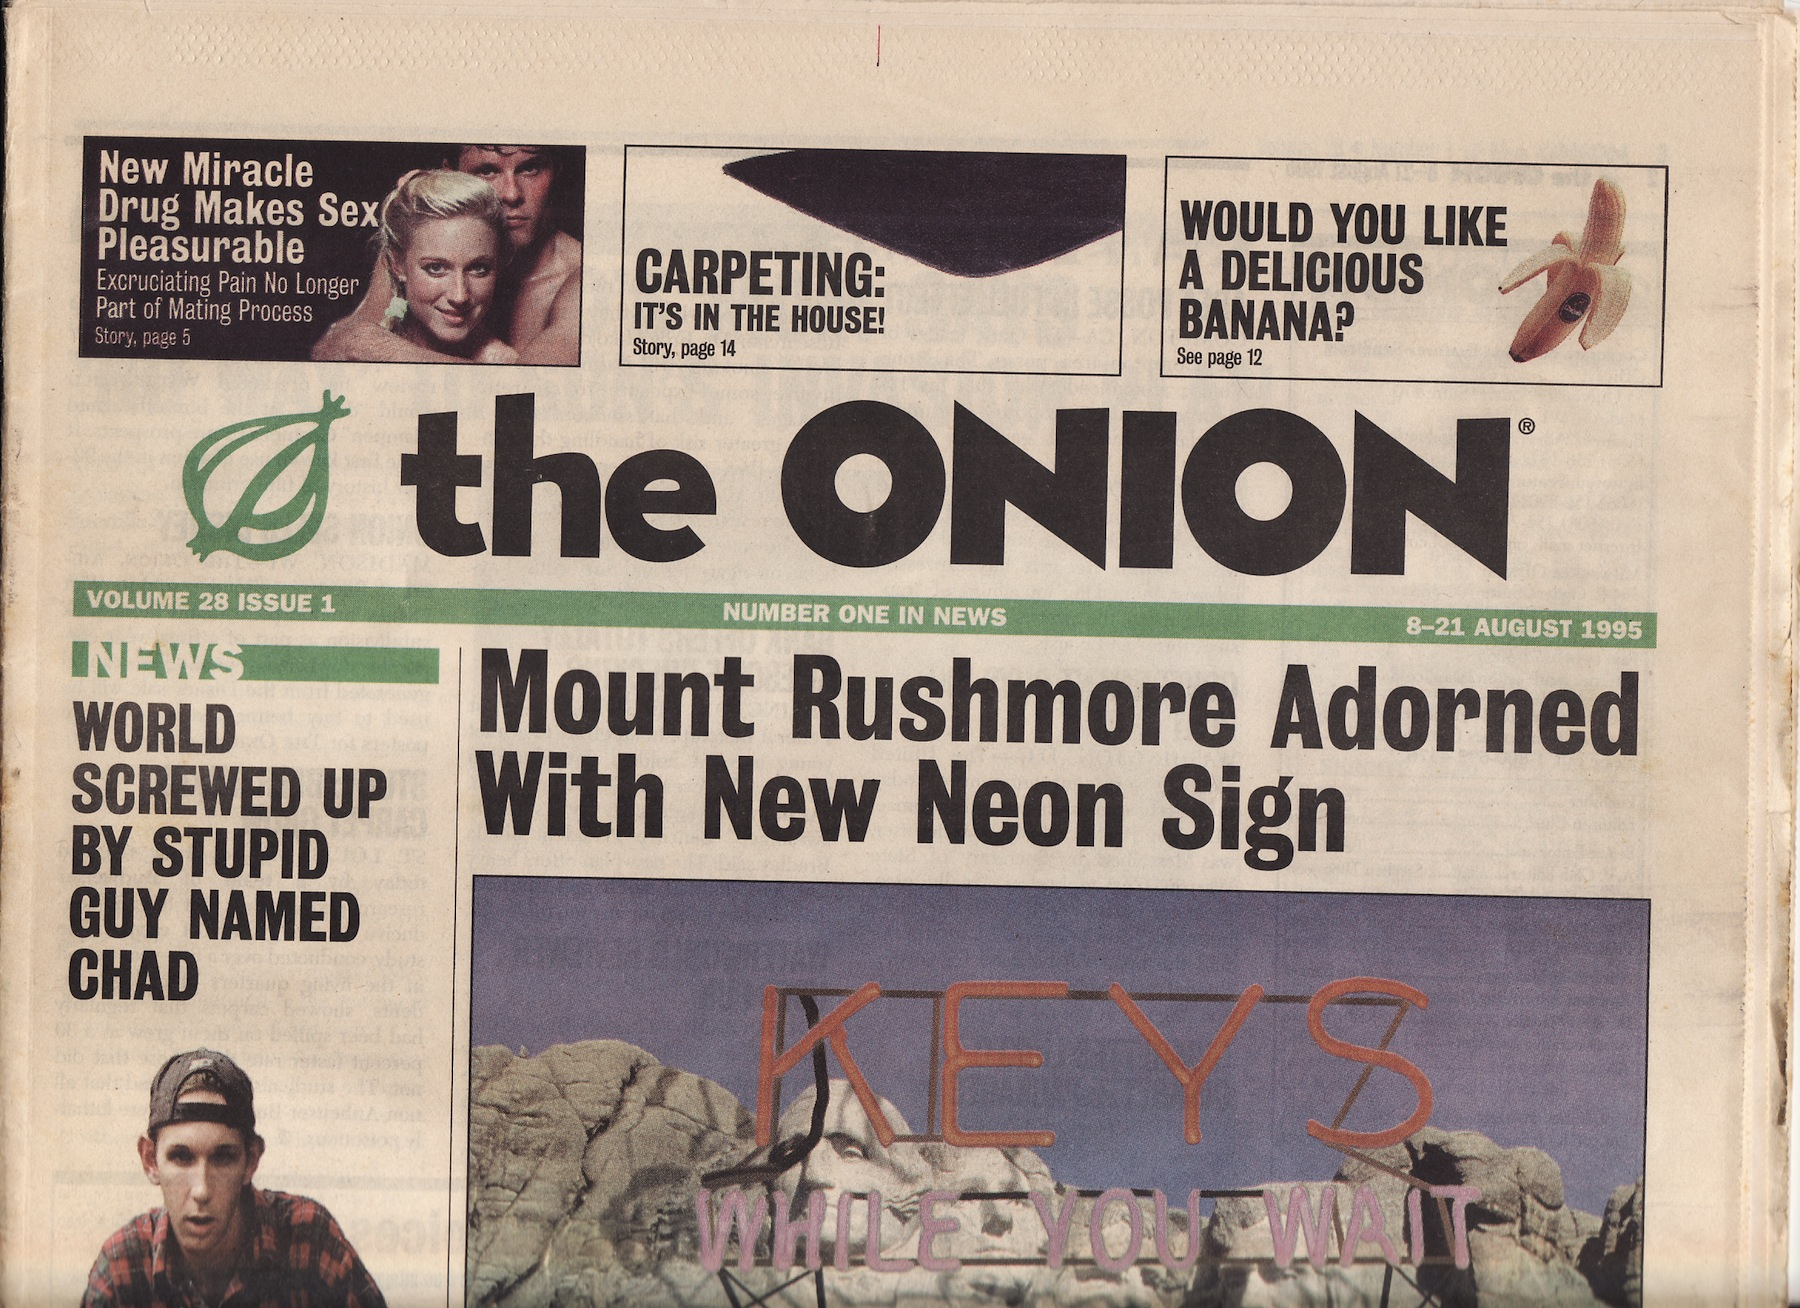 Area Woman Mourns Ironic Death: Remembering The Onion's newspaper days